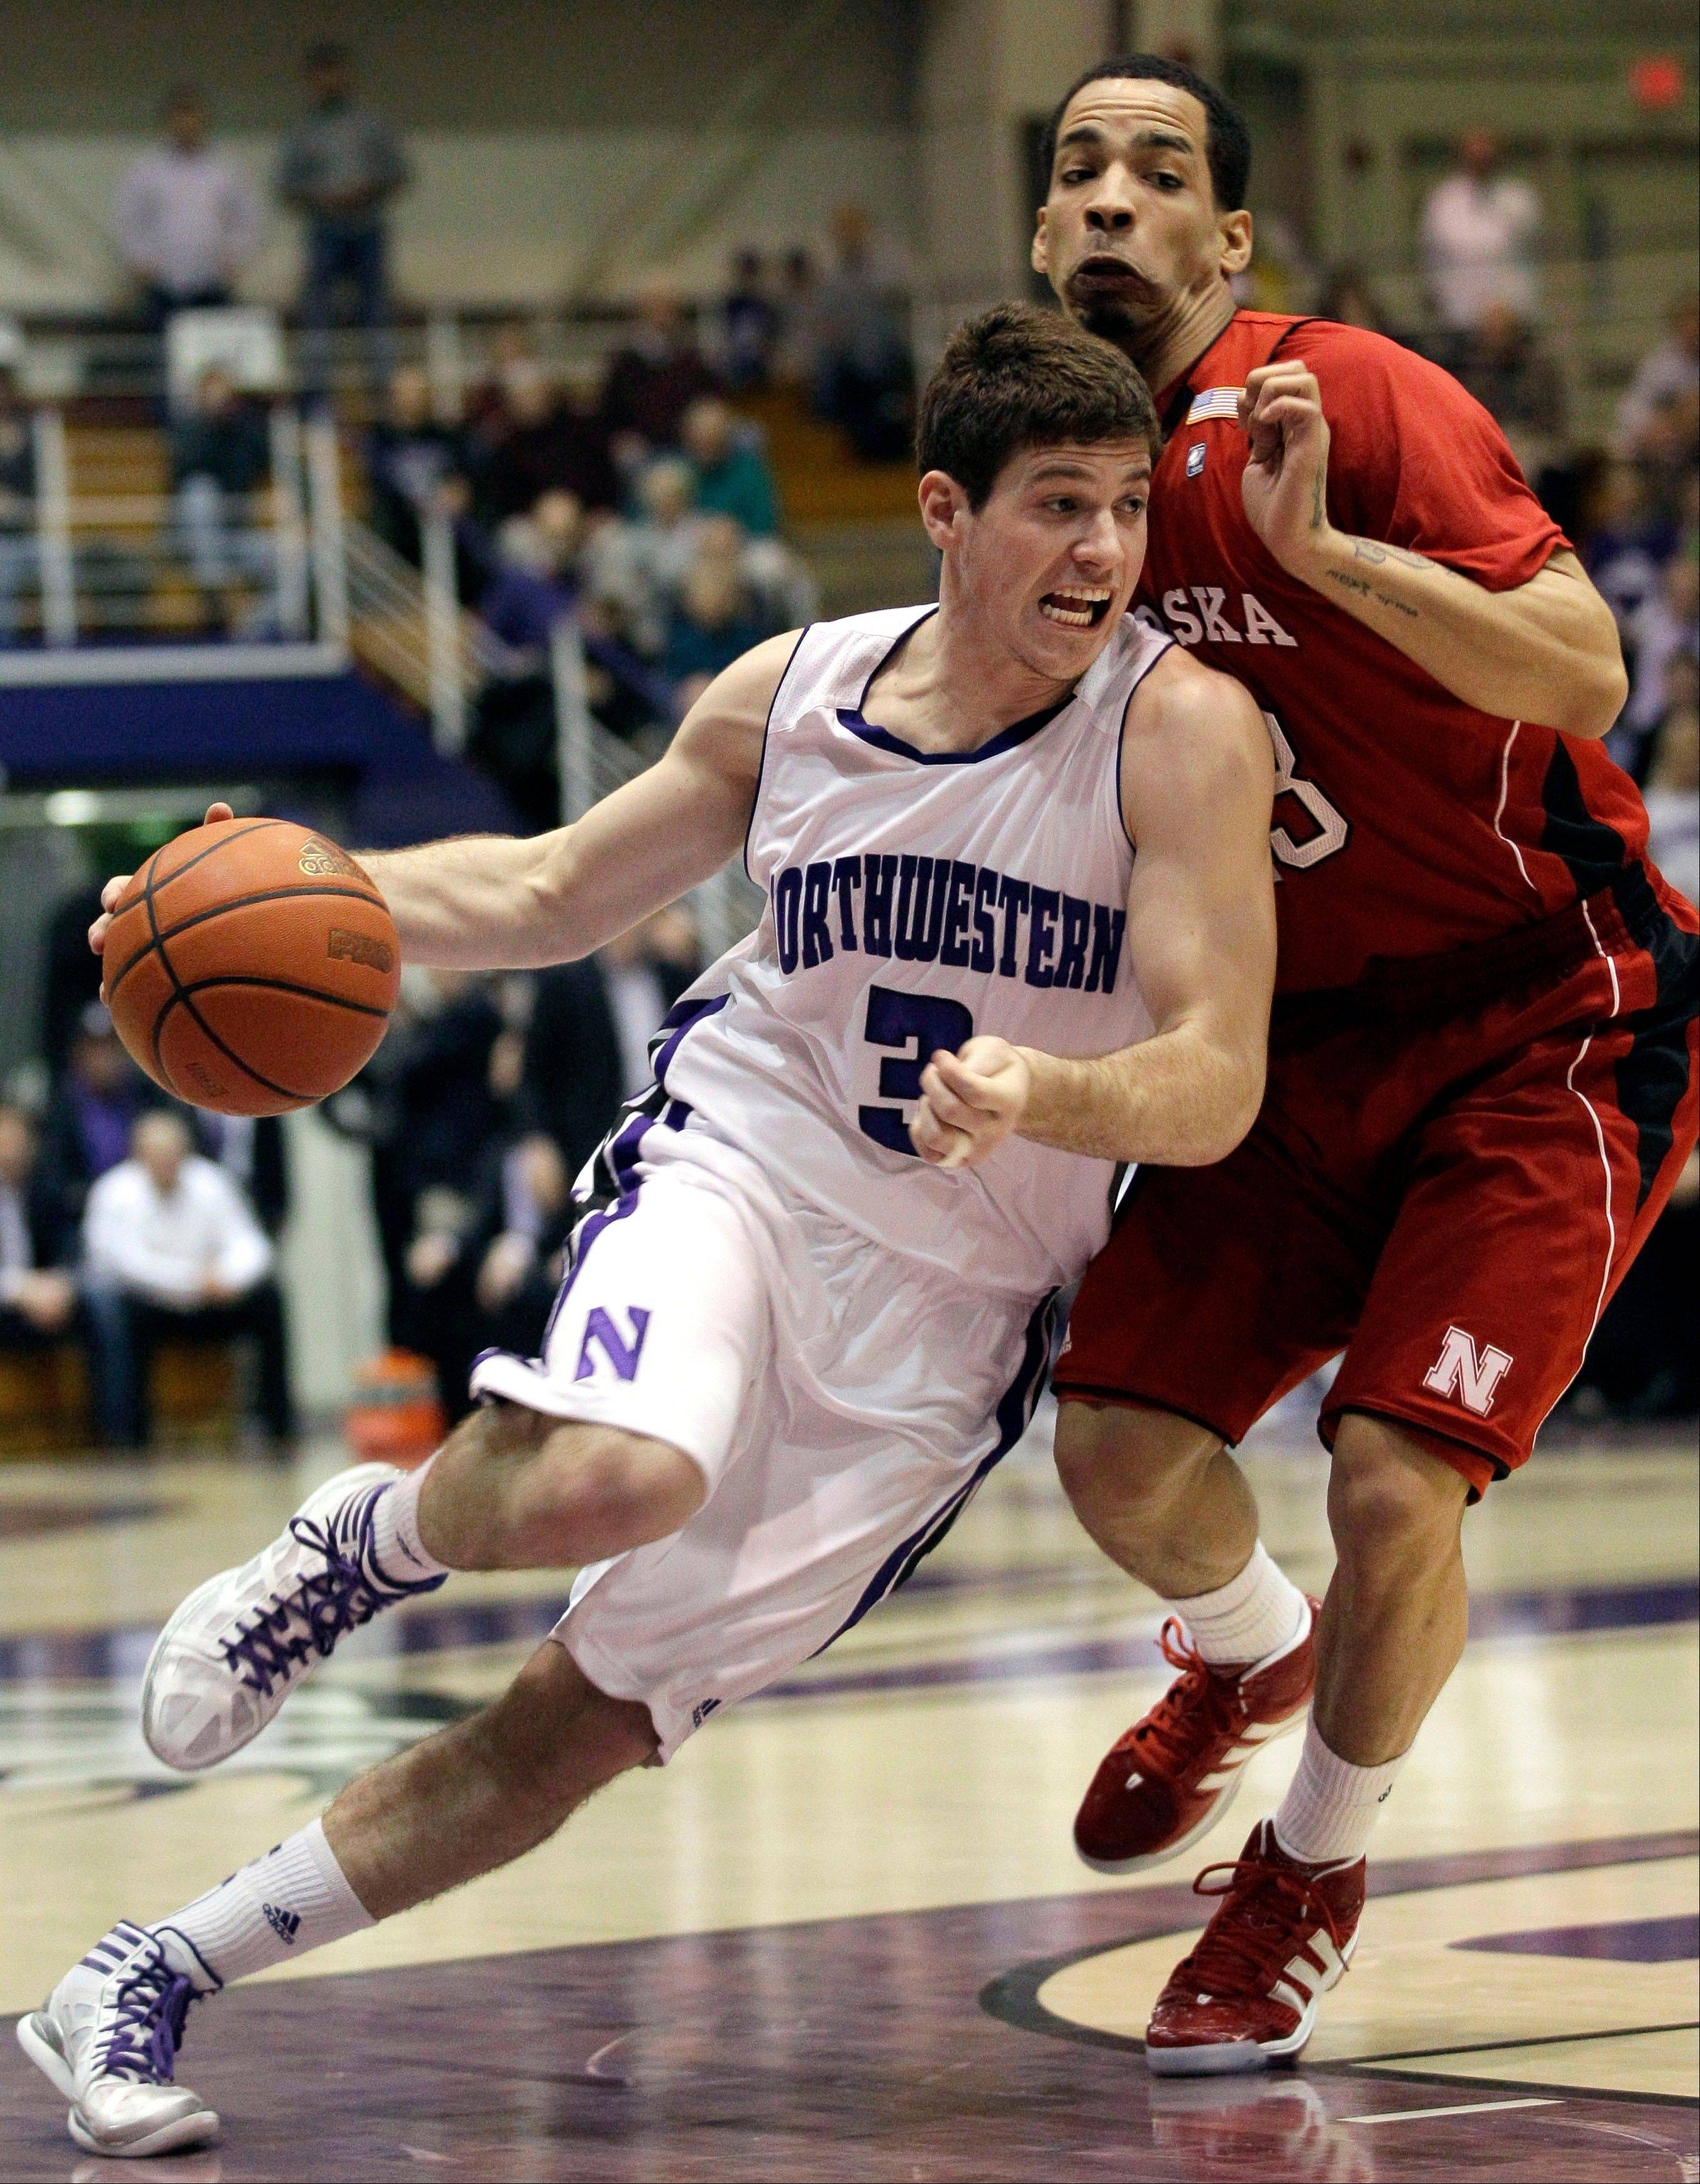 Northwestern point guard Dave Sobolewski said as a sophomore he feels much more comfortable directing the Wildcats' offense.